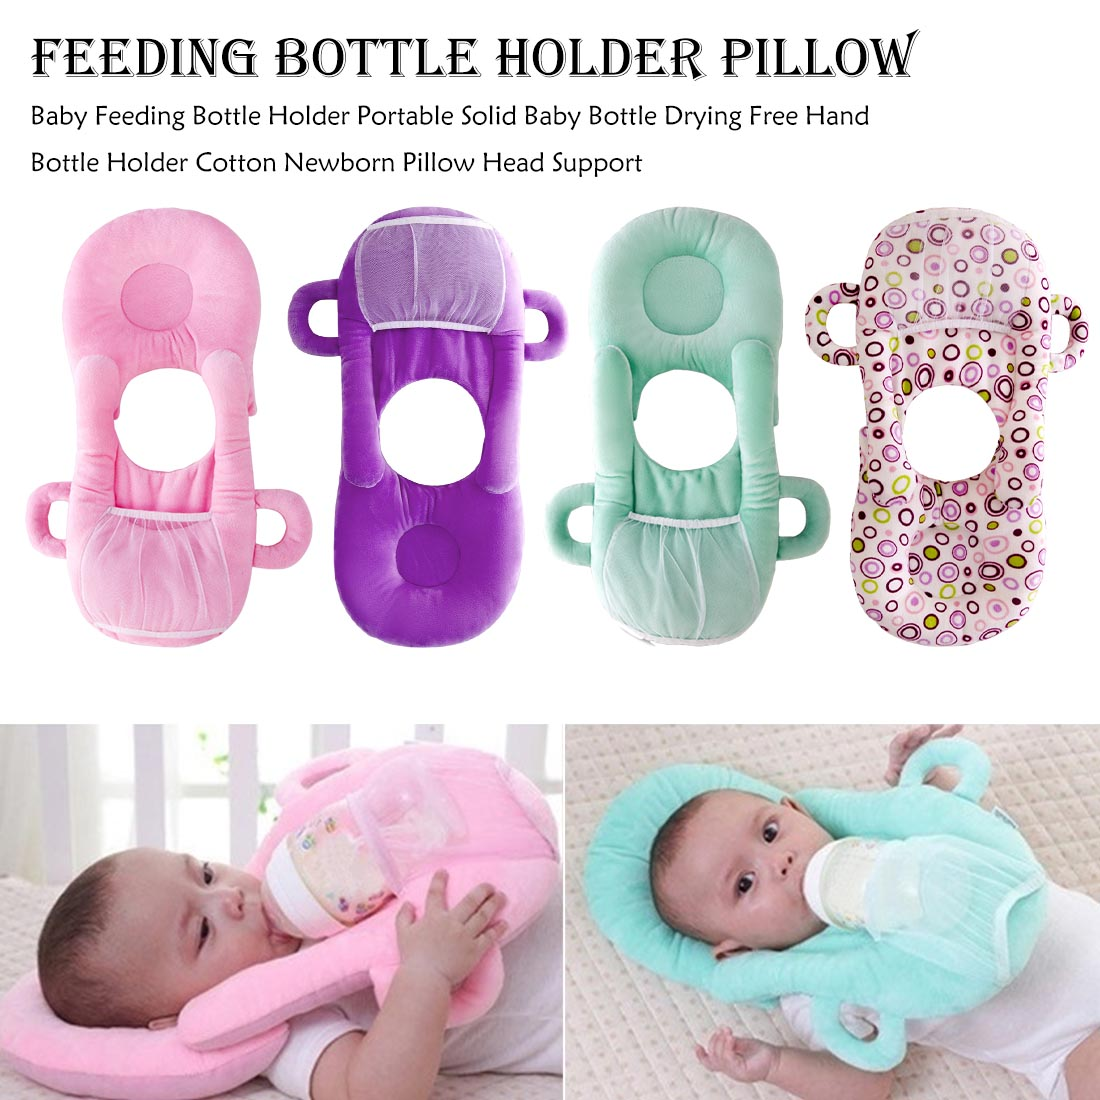 2019 Creative Baby Care Kit Infant Baby Feeding Hand Free Nursing Pillow Baby Bottle Rack Cushion With Bottle Holder Bag